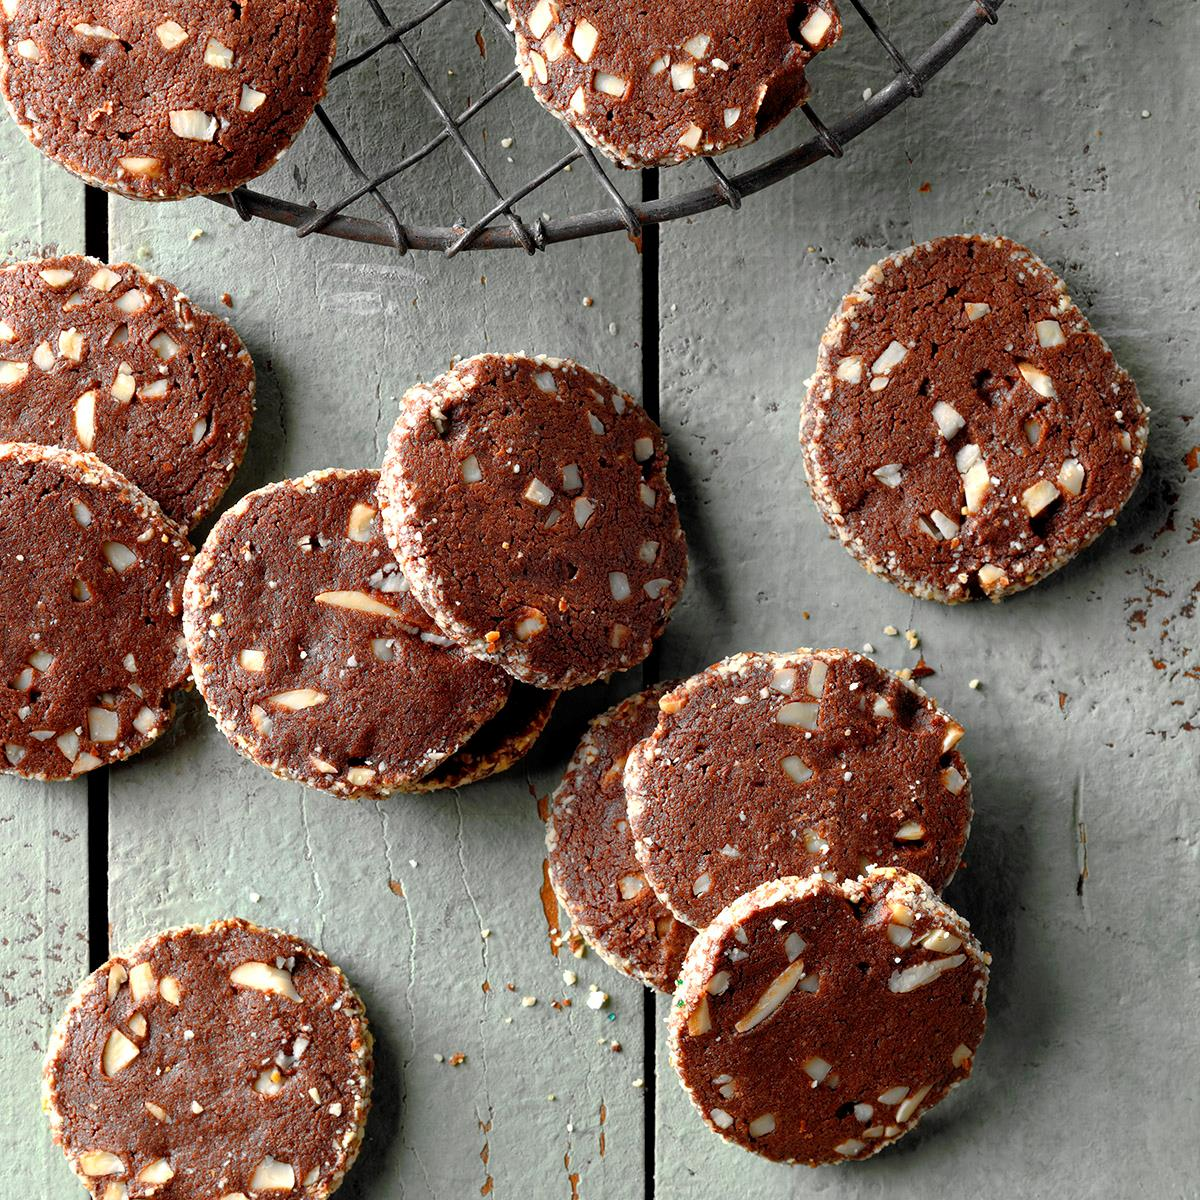 Chocolate Almond Wafers